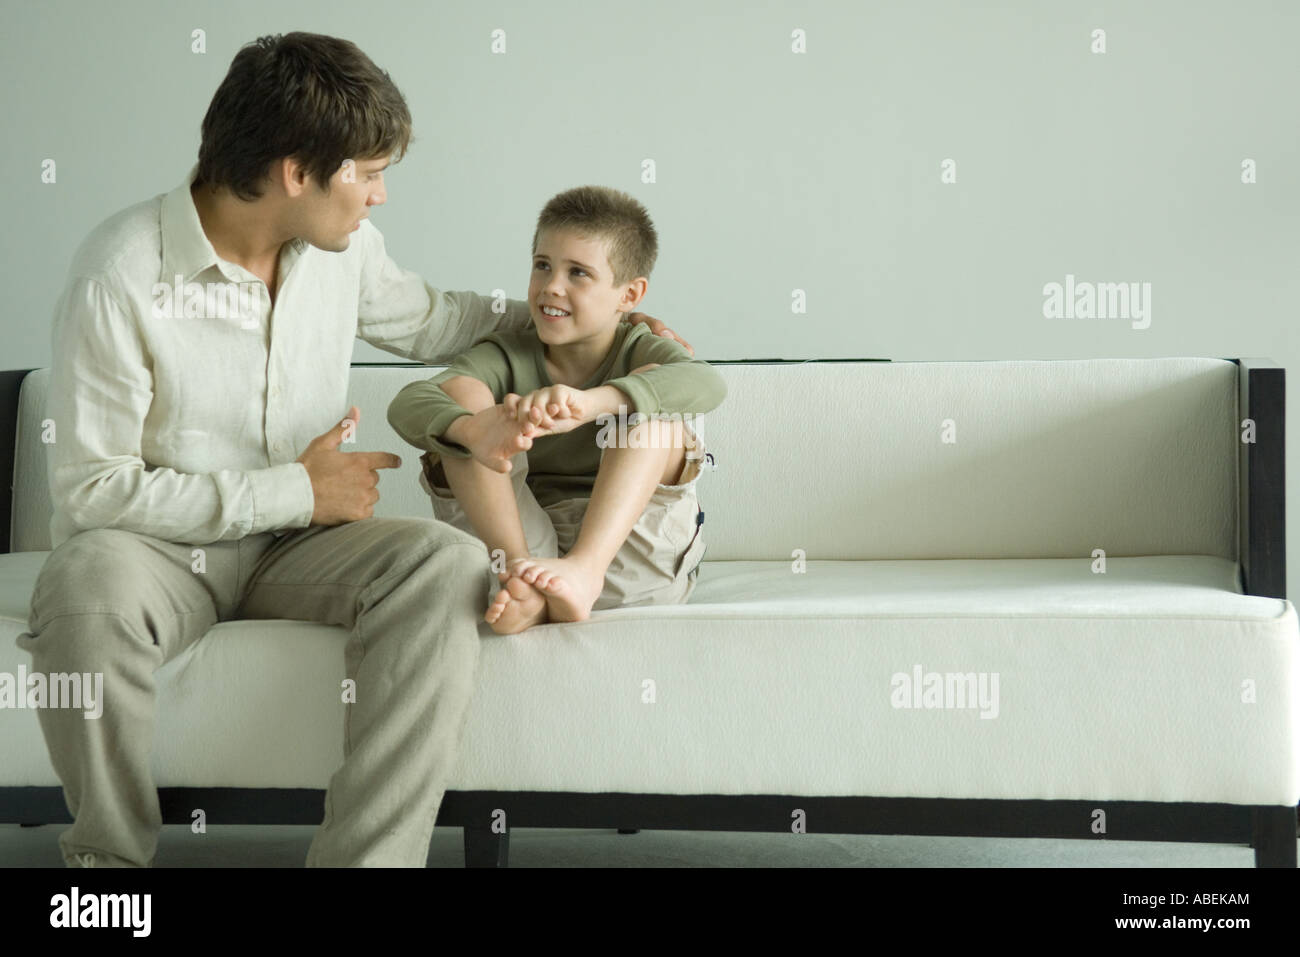 Father and son sitting on sofa, talking - Stock Image